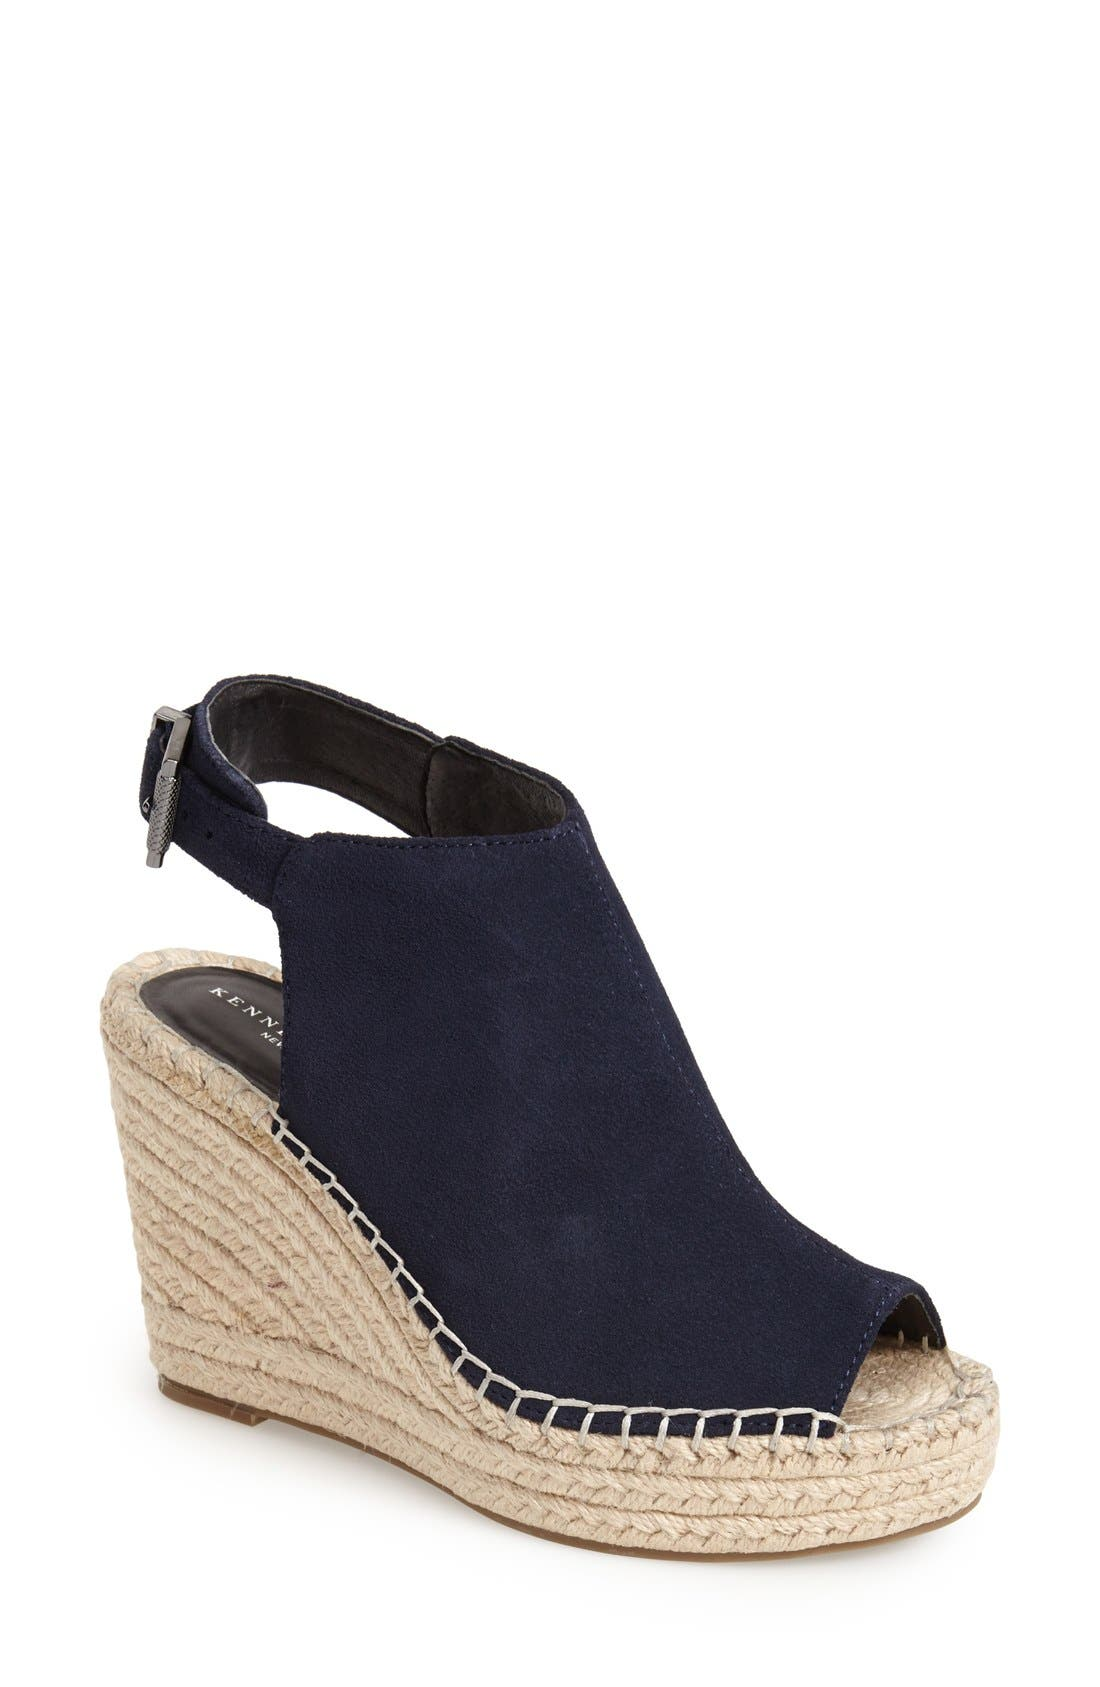 Alternate Image 1 Selected - Kenneth Cole New York 'Olivia' Espadrille Wedge Sandal (Women)